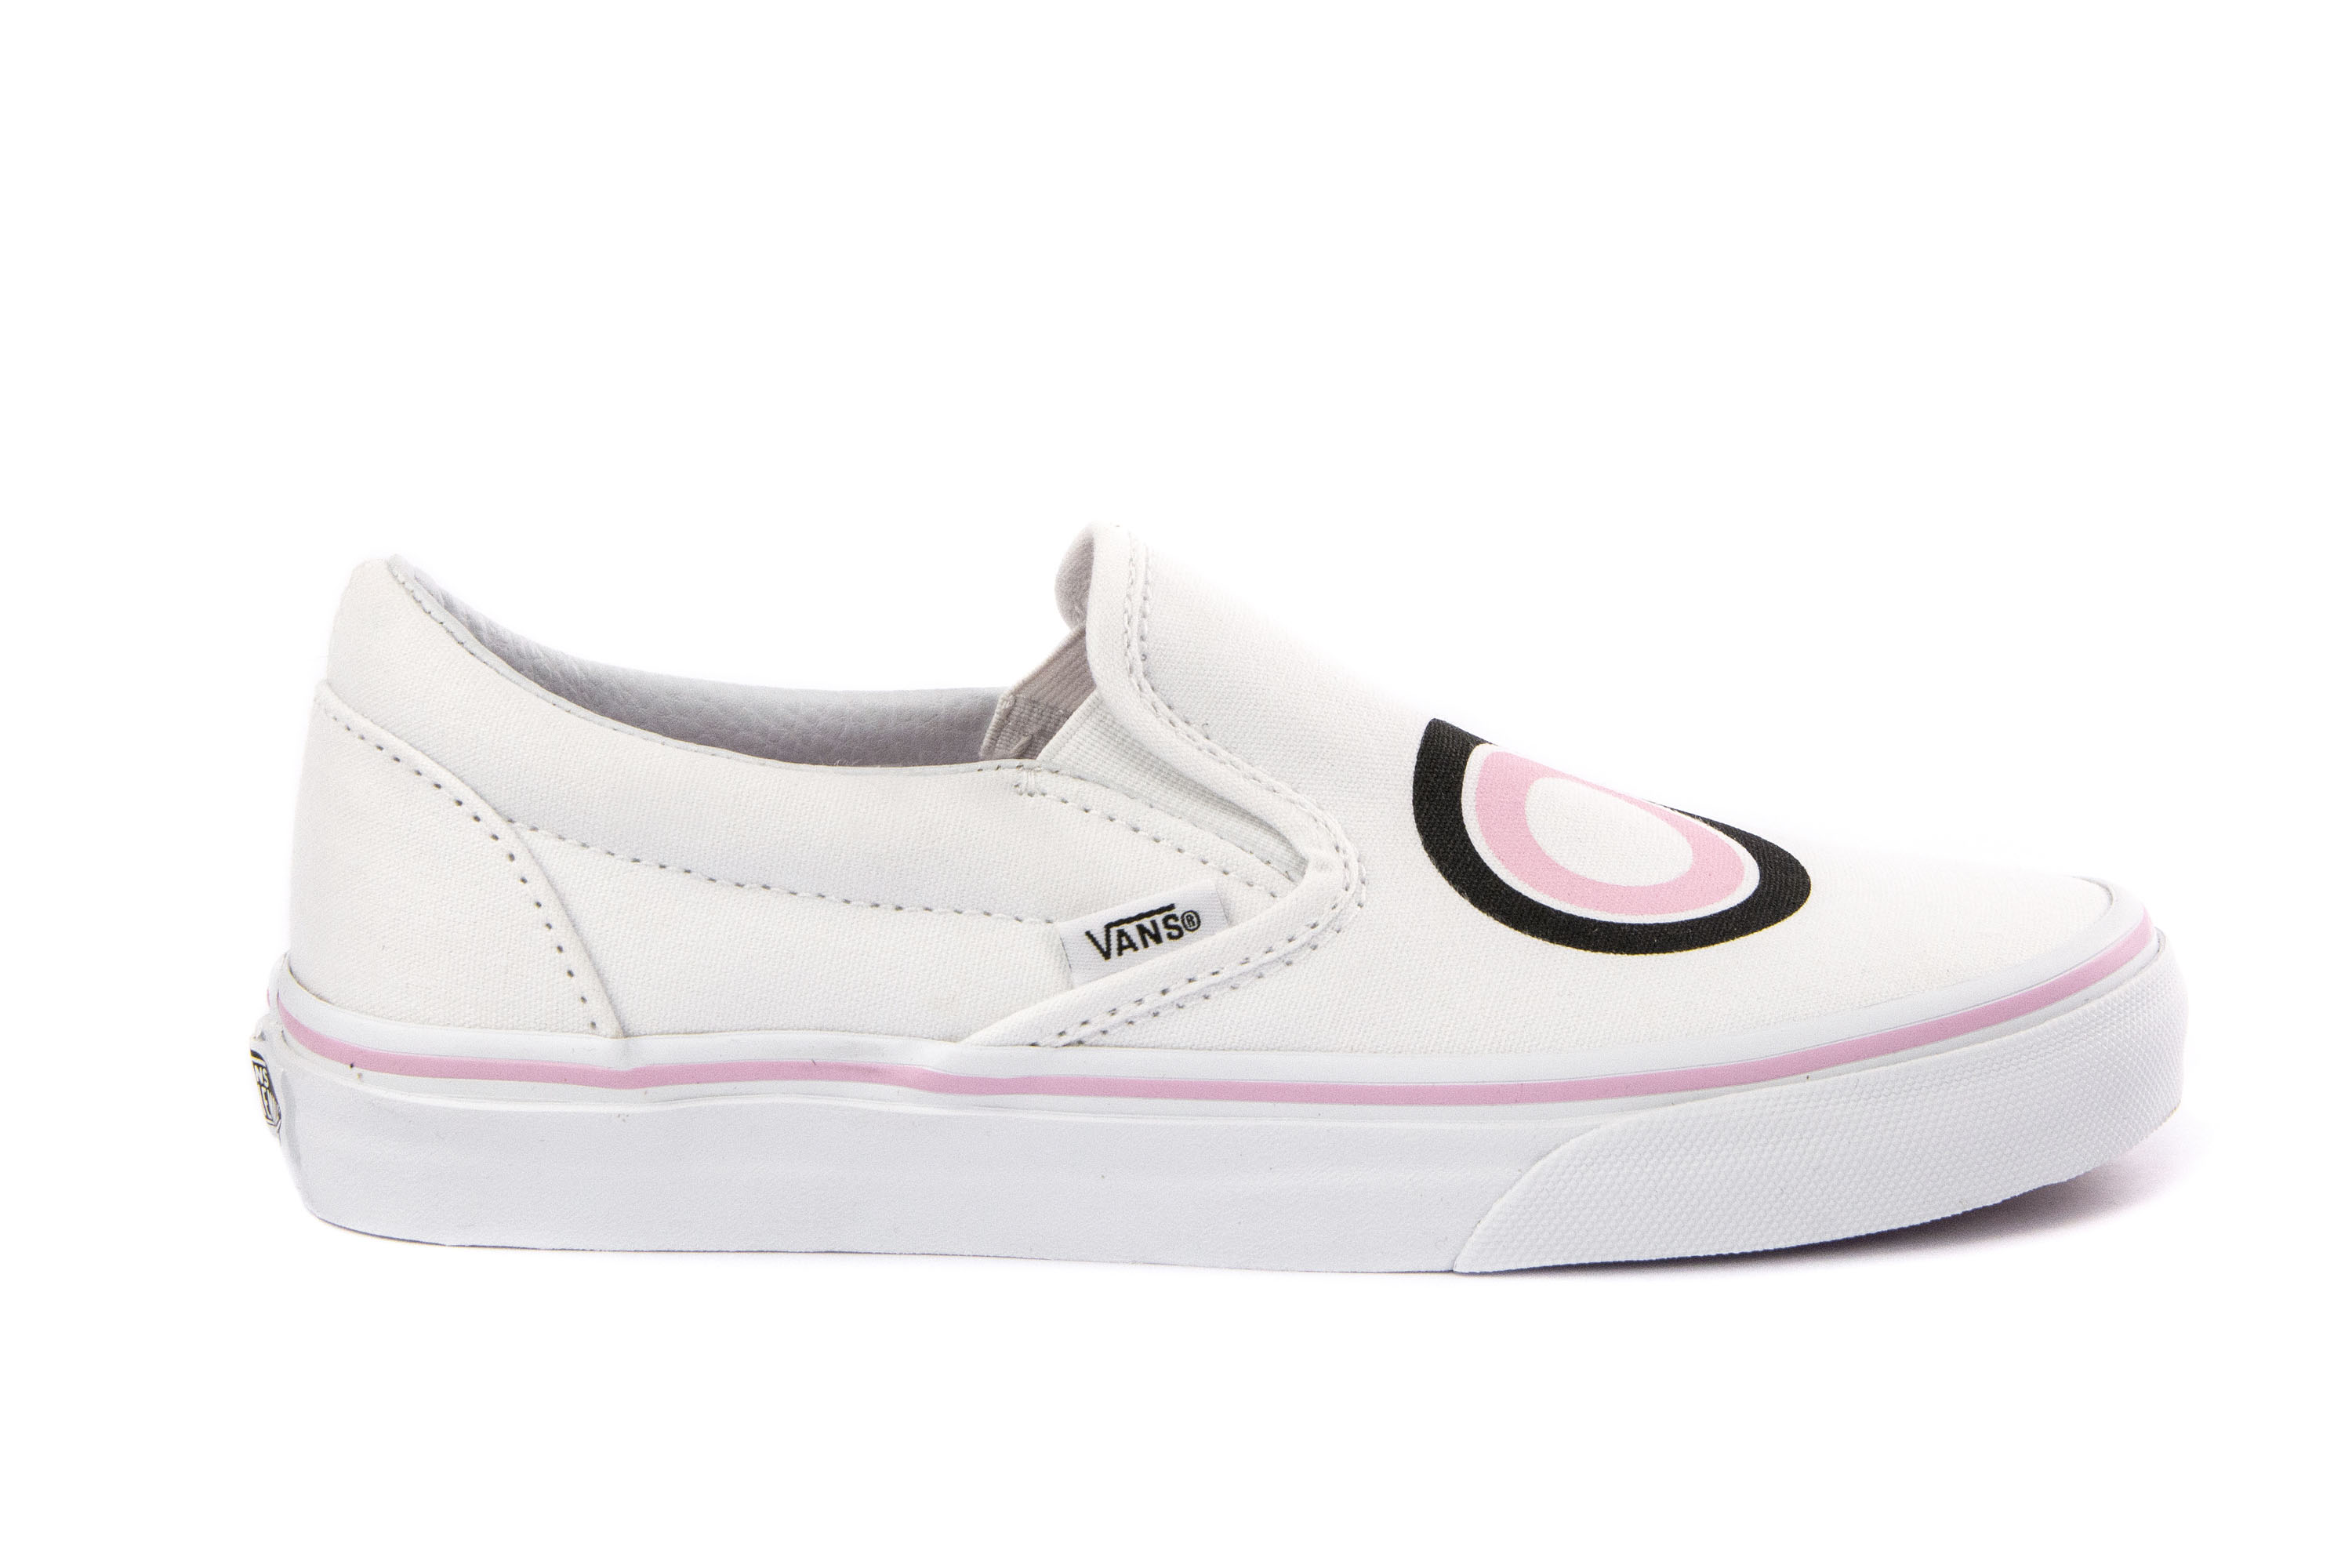 fab3c97dec Details about VANS Womens Shoes Sneakers Skate CLASSIC SLIP-ON White  Printed Canvas